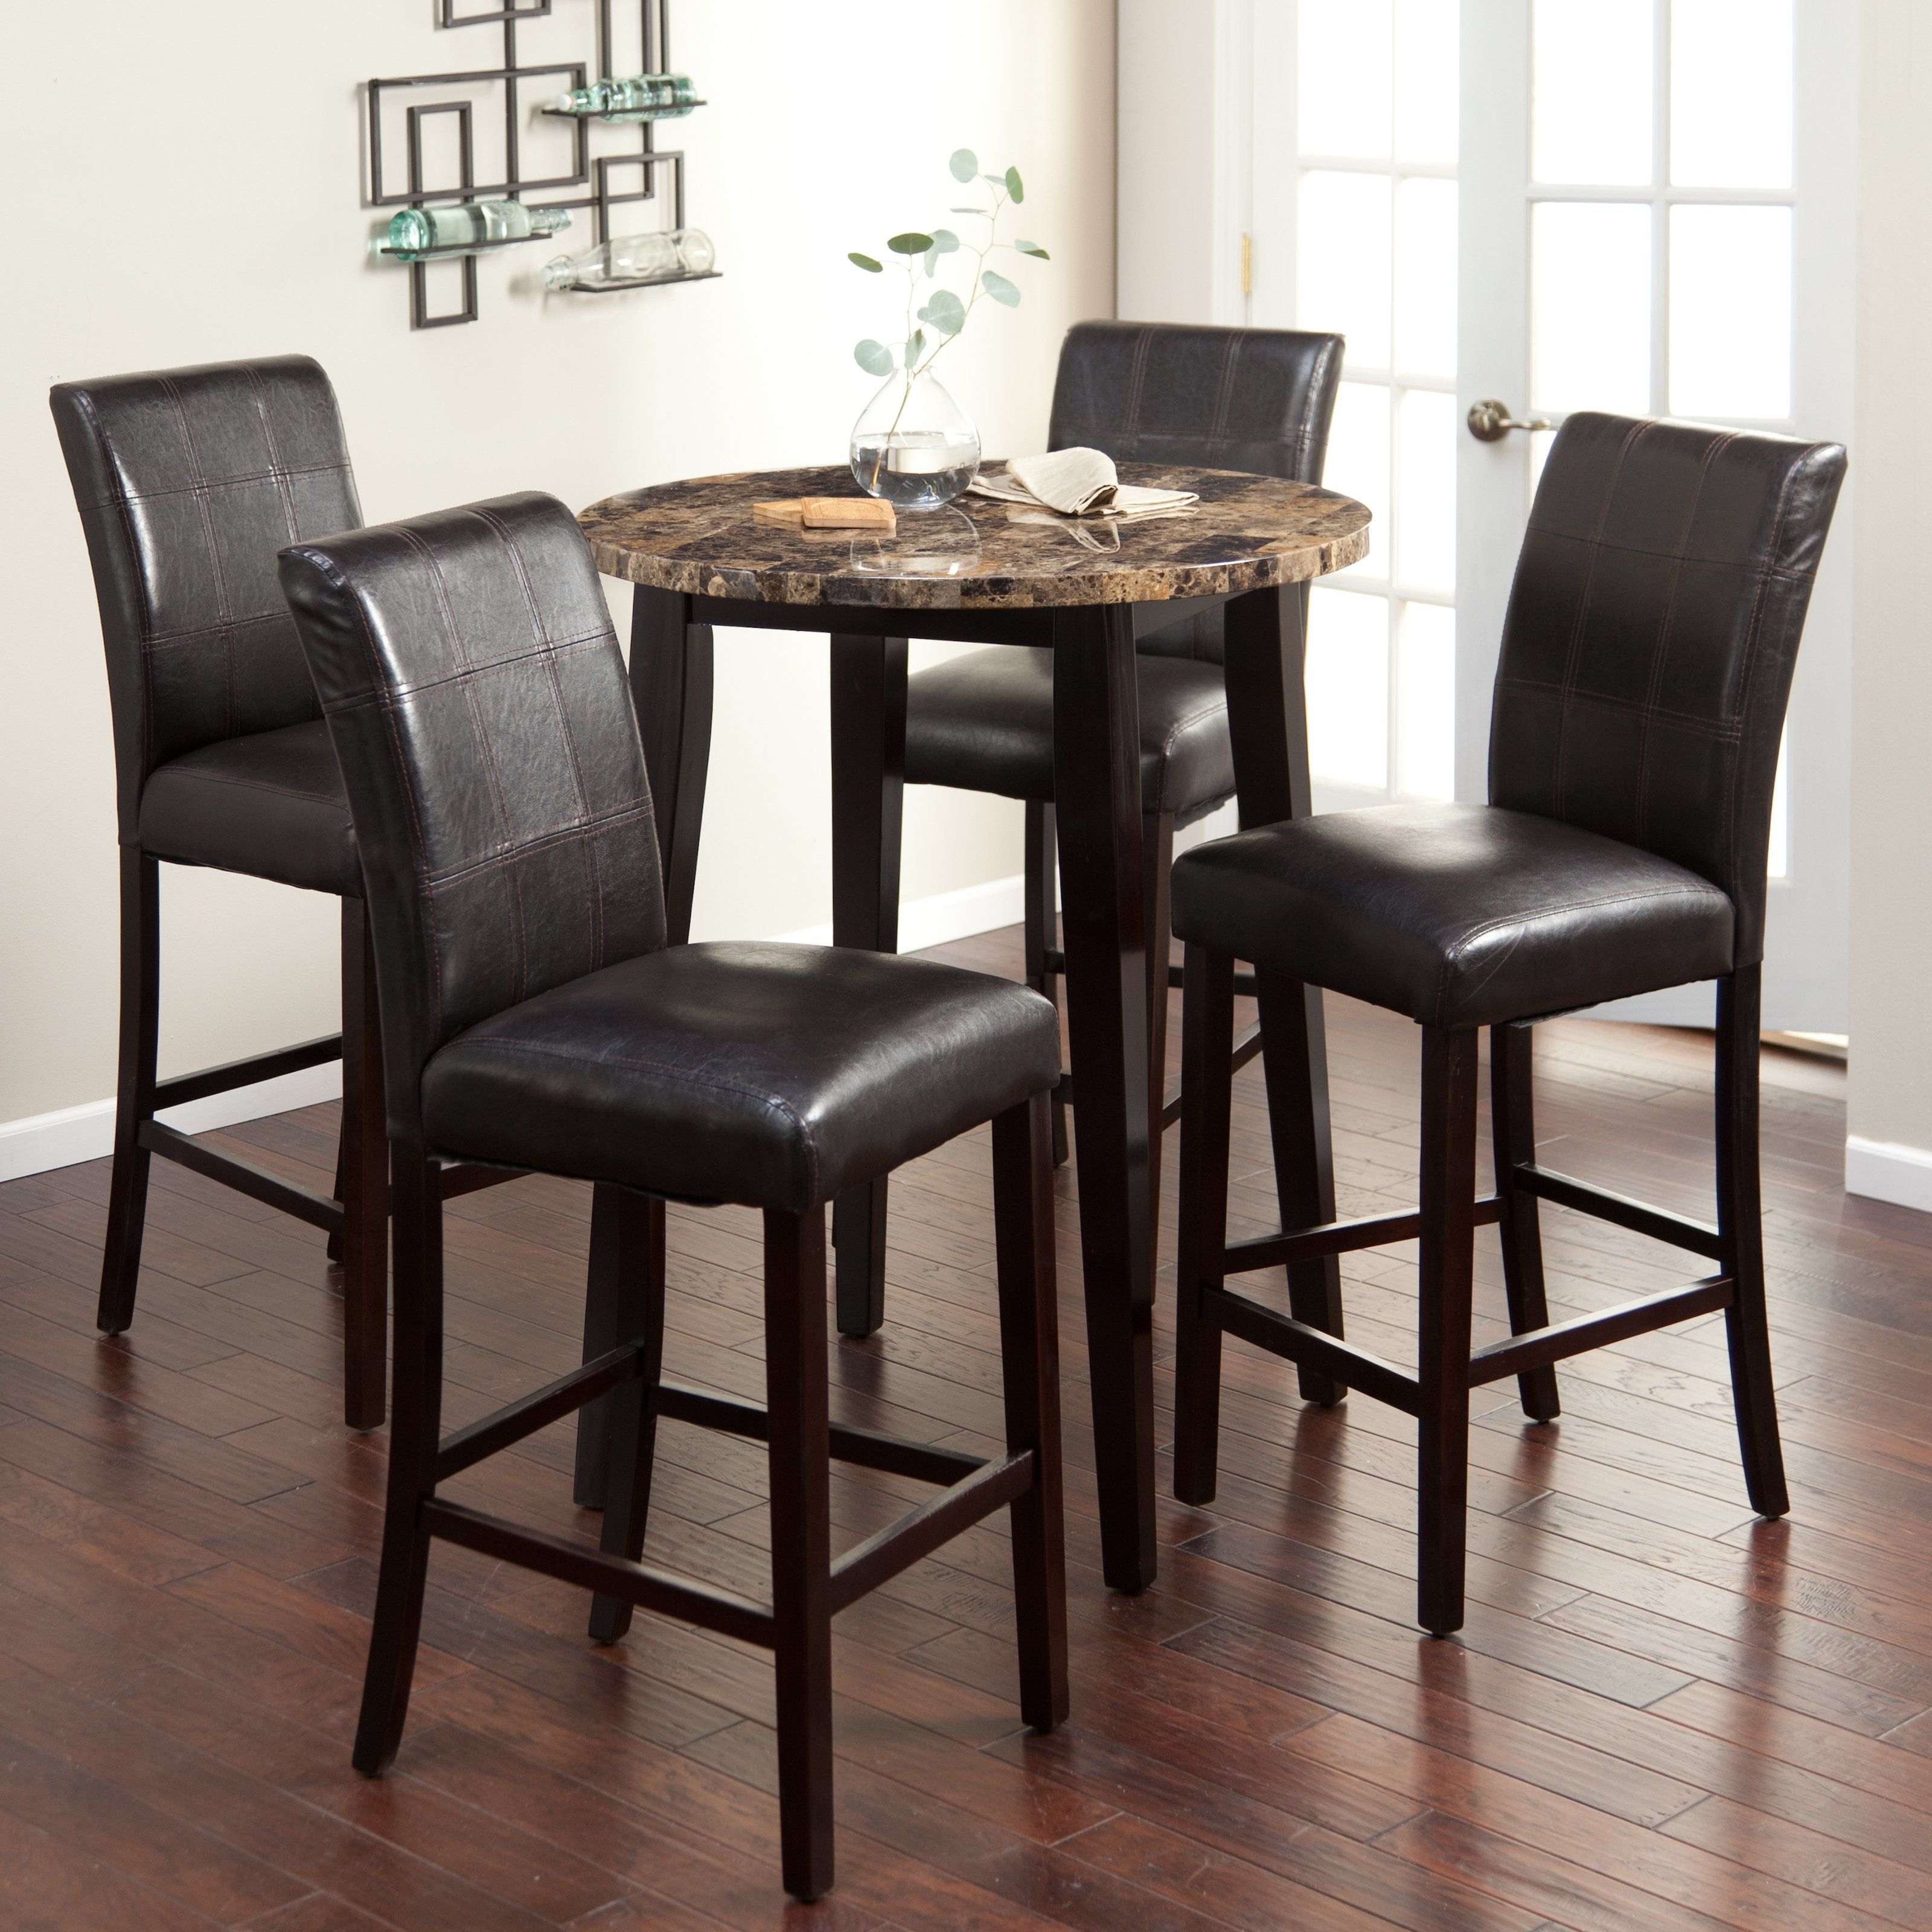 How To Choose The Right Pub Table Sets – Darbylanefurniture.com | Pub Table And Chairs, Bar Table Sets, Round Pub Table